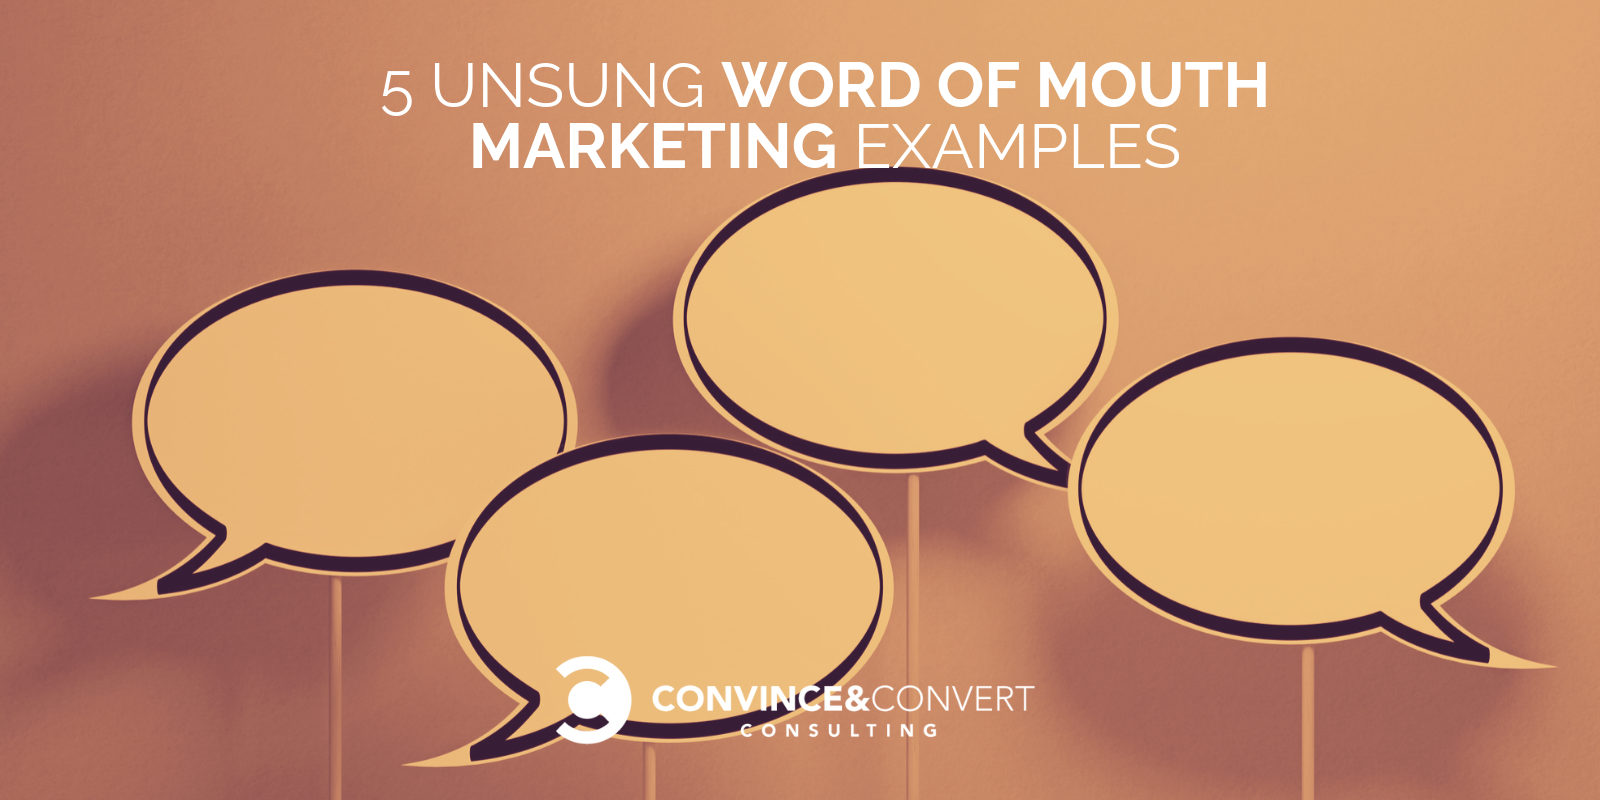 5 Unsung Word of Mouth Marketing Examples | Convince & Convert Word